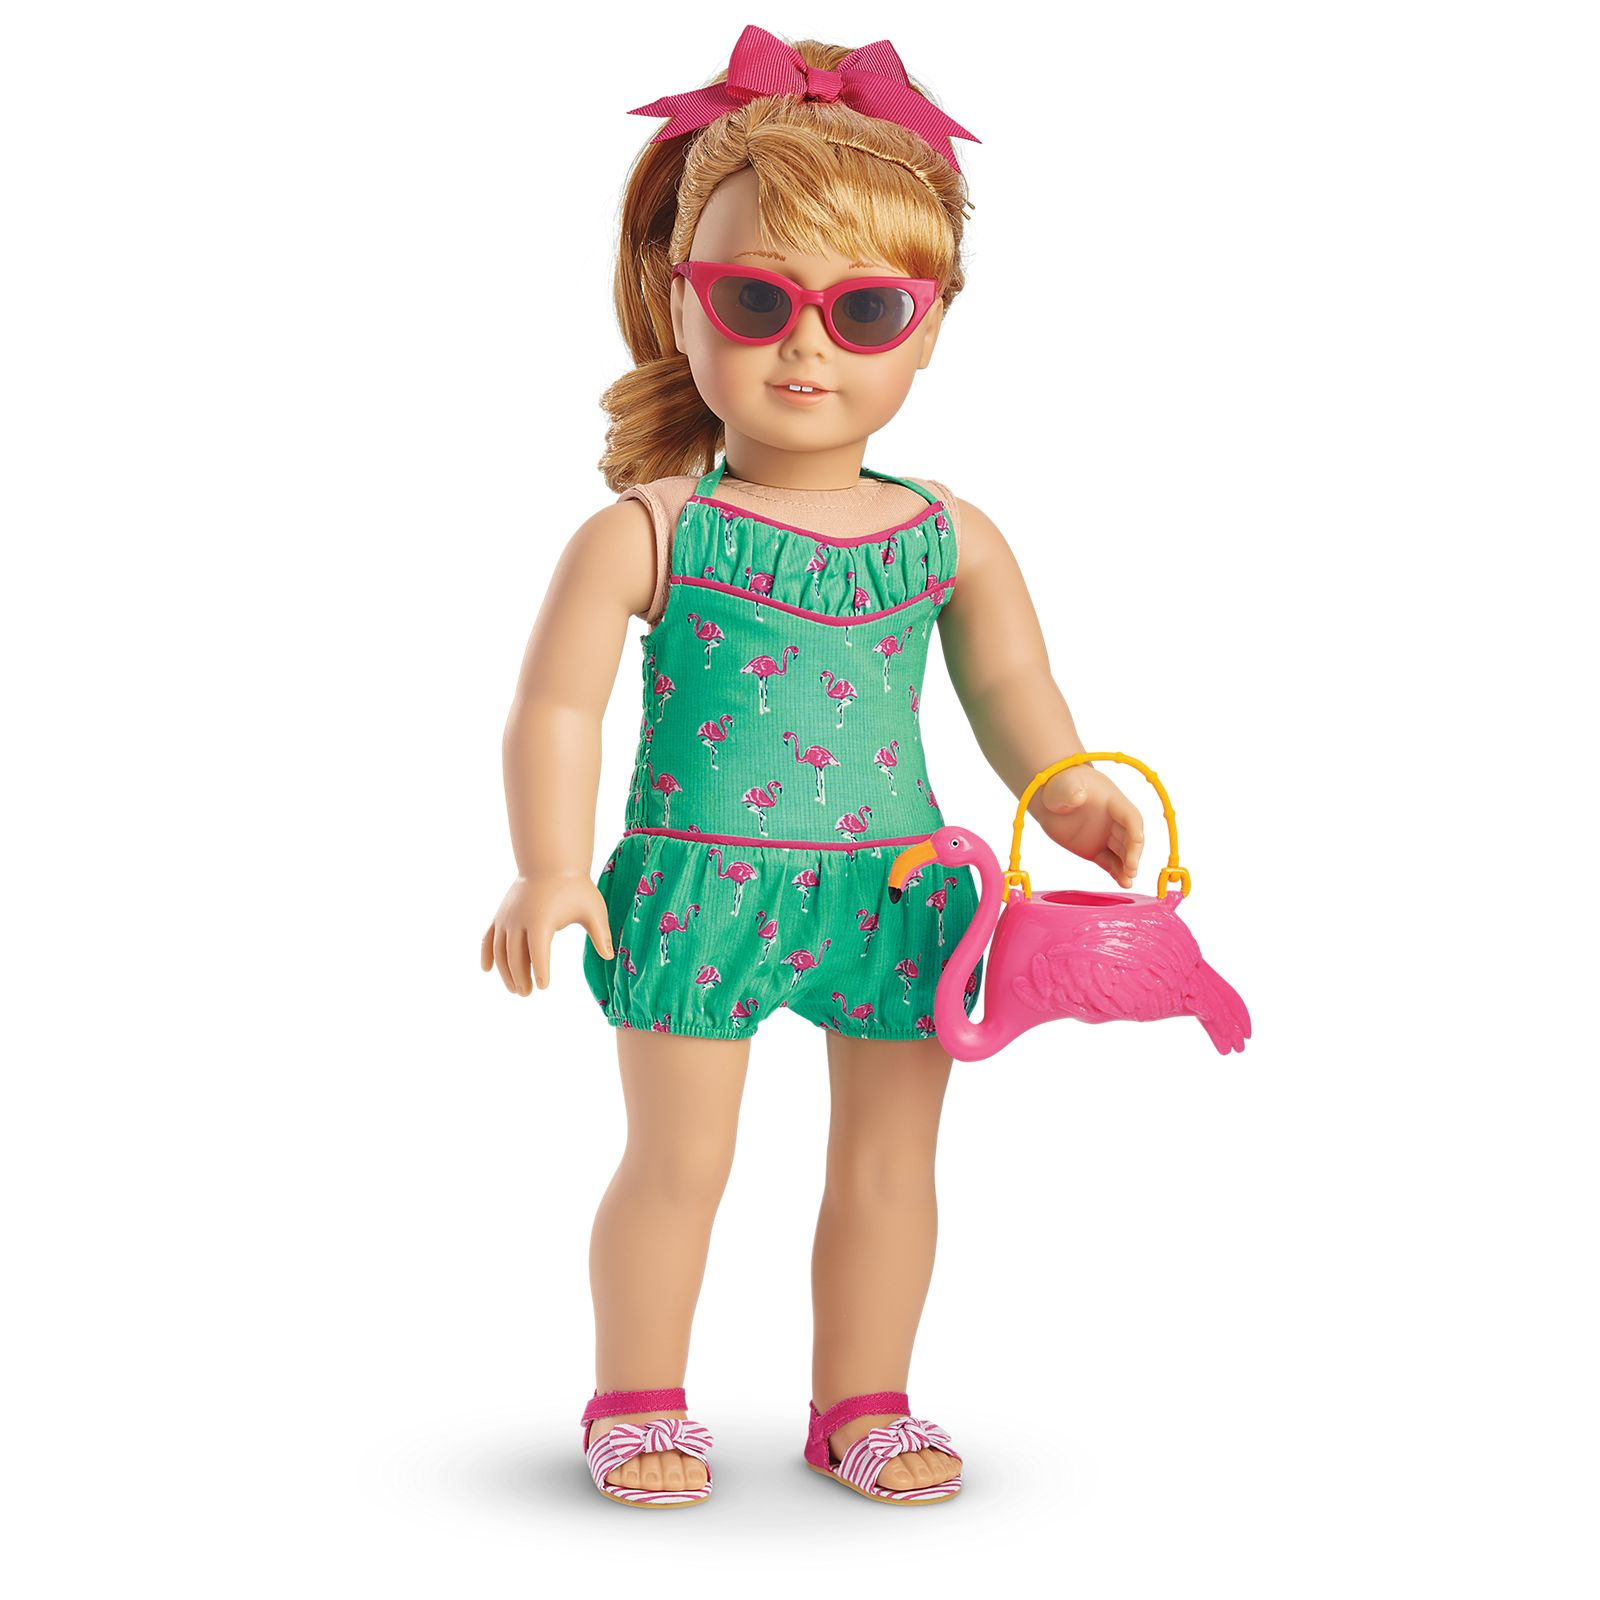 "Flamingos And Bows Short Set Fits 18/"" American Girl Doll Clothes"